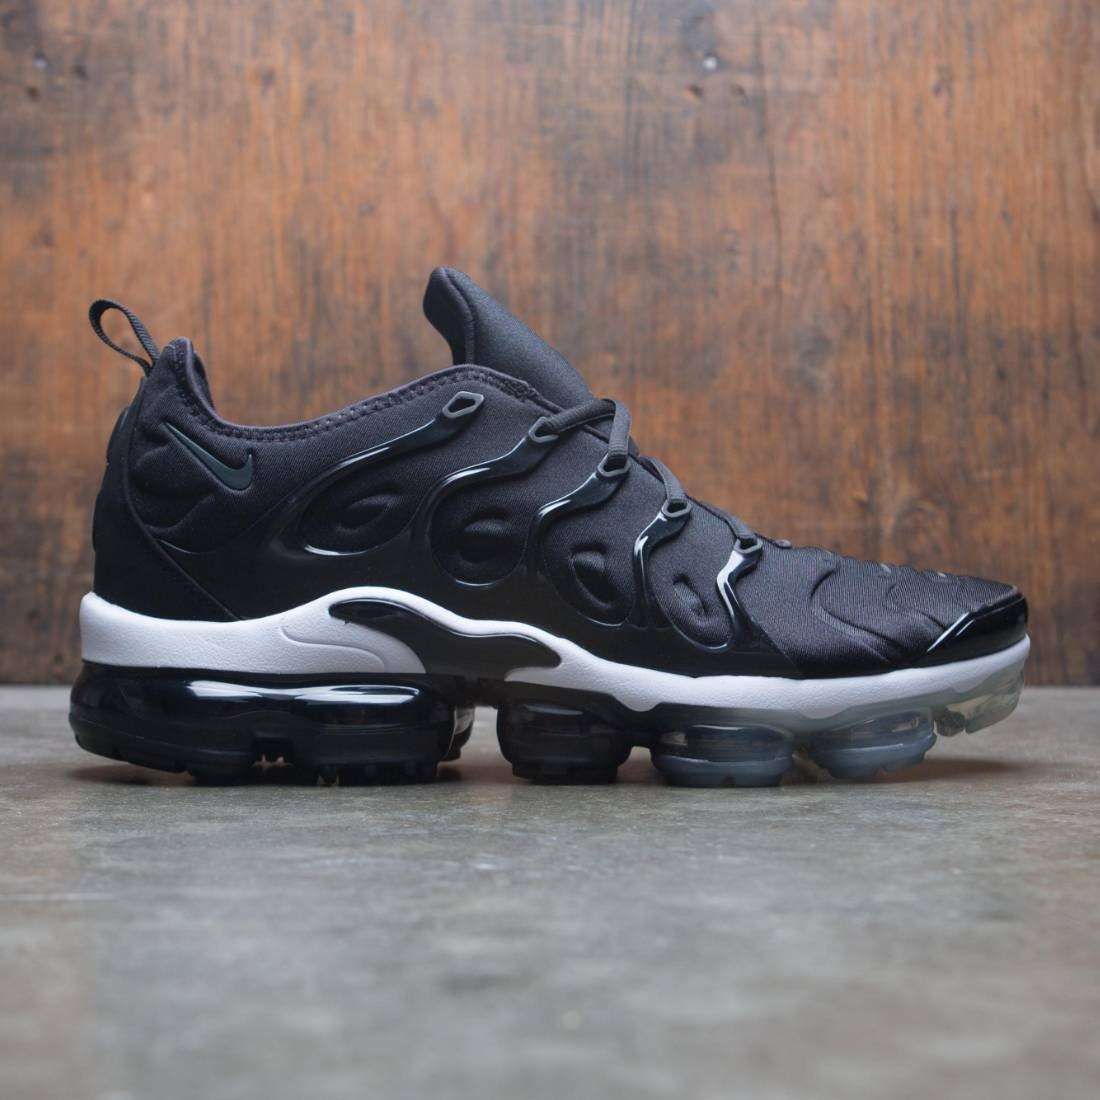 pretty nice 8bb45 4d3f4 Nike Men Air Vapormax Plus (black / anthracite-white)